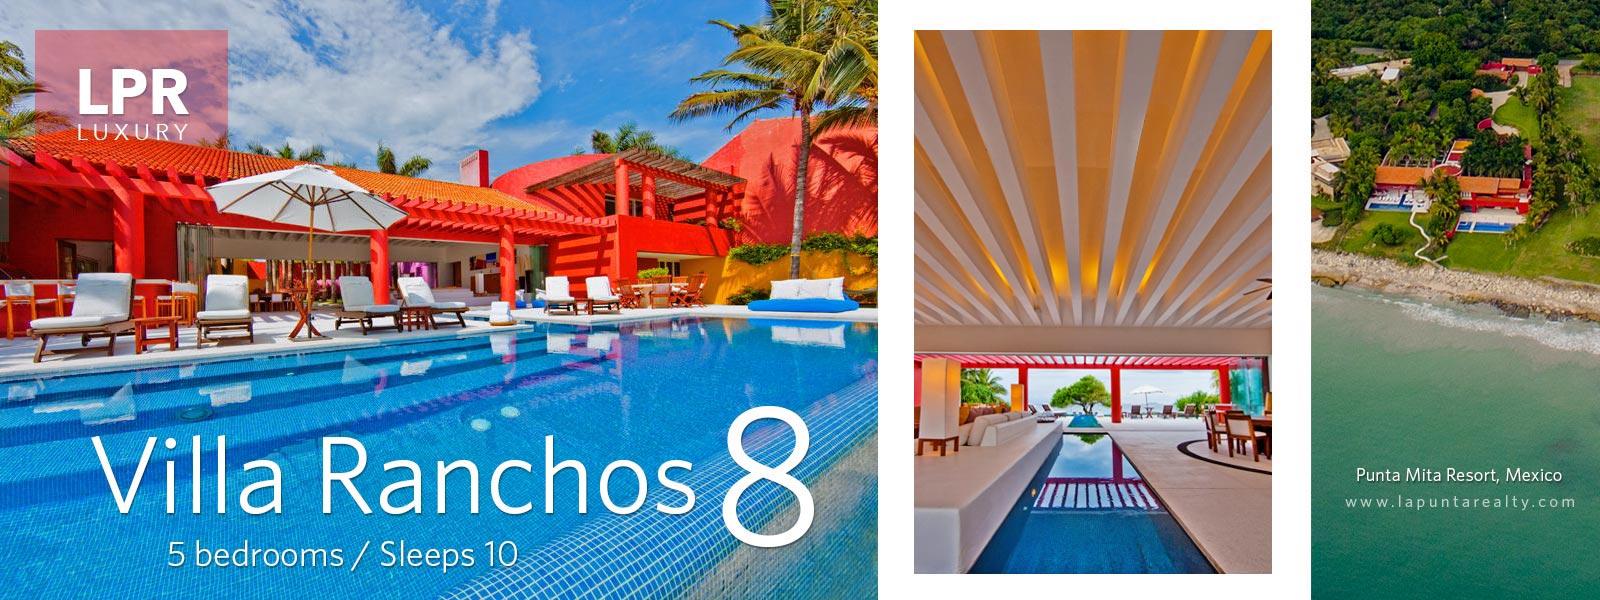 Villa Ranchos 8 - Ranchos Estates, Punta Mita Resort, Mexico